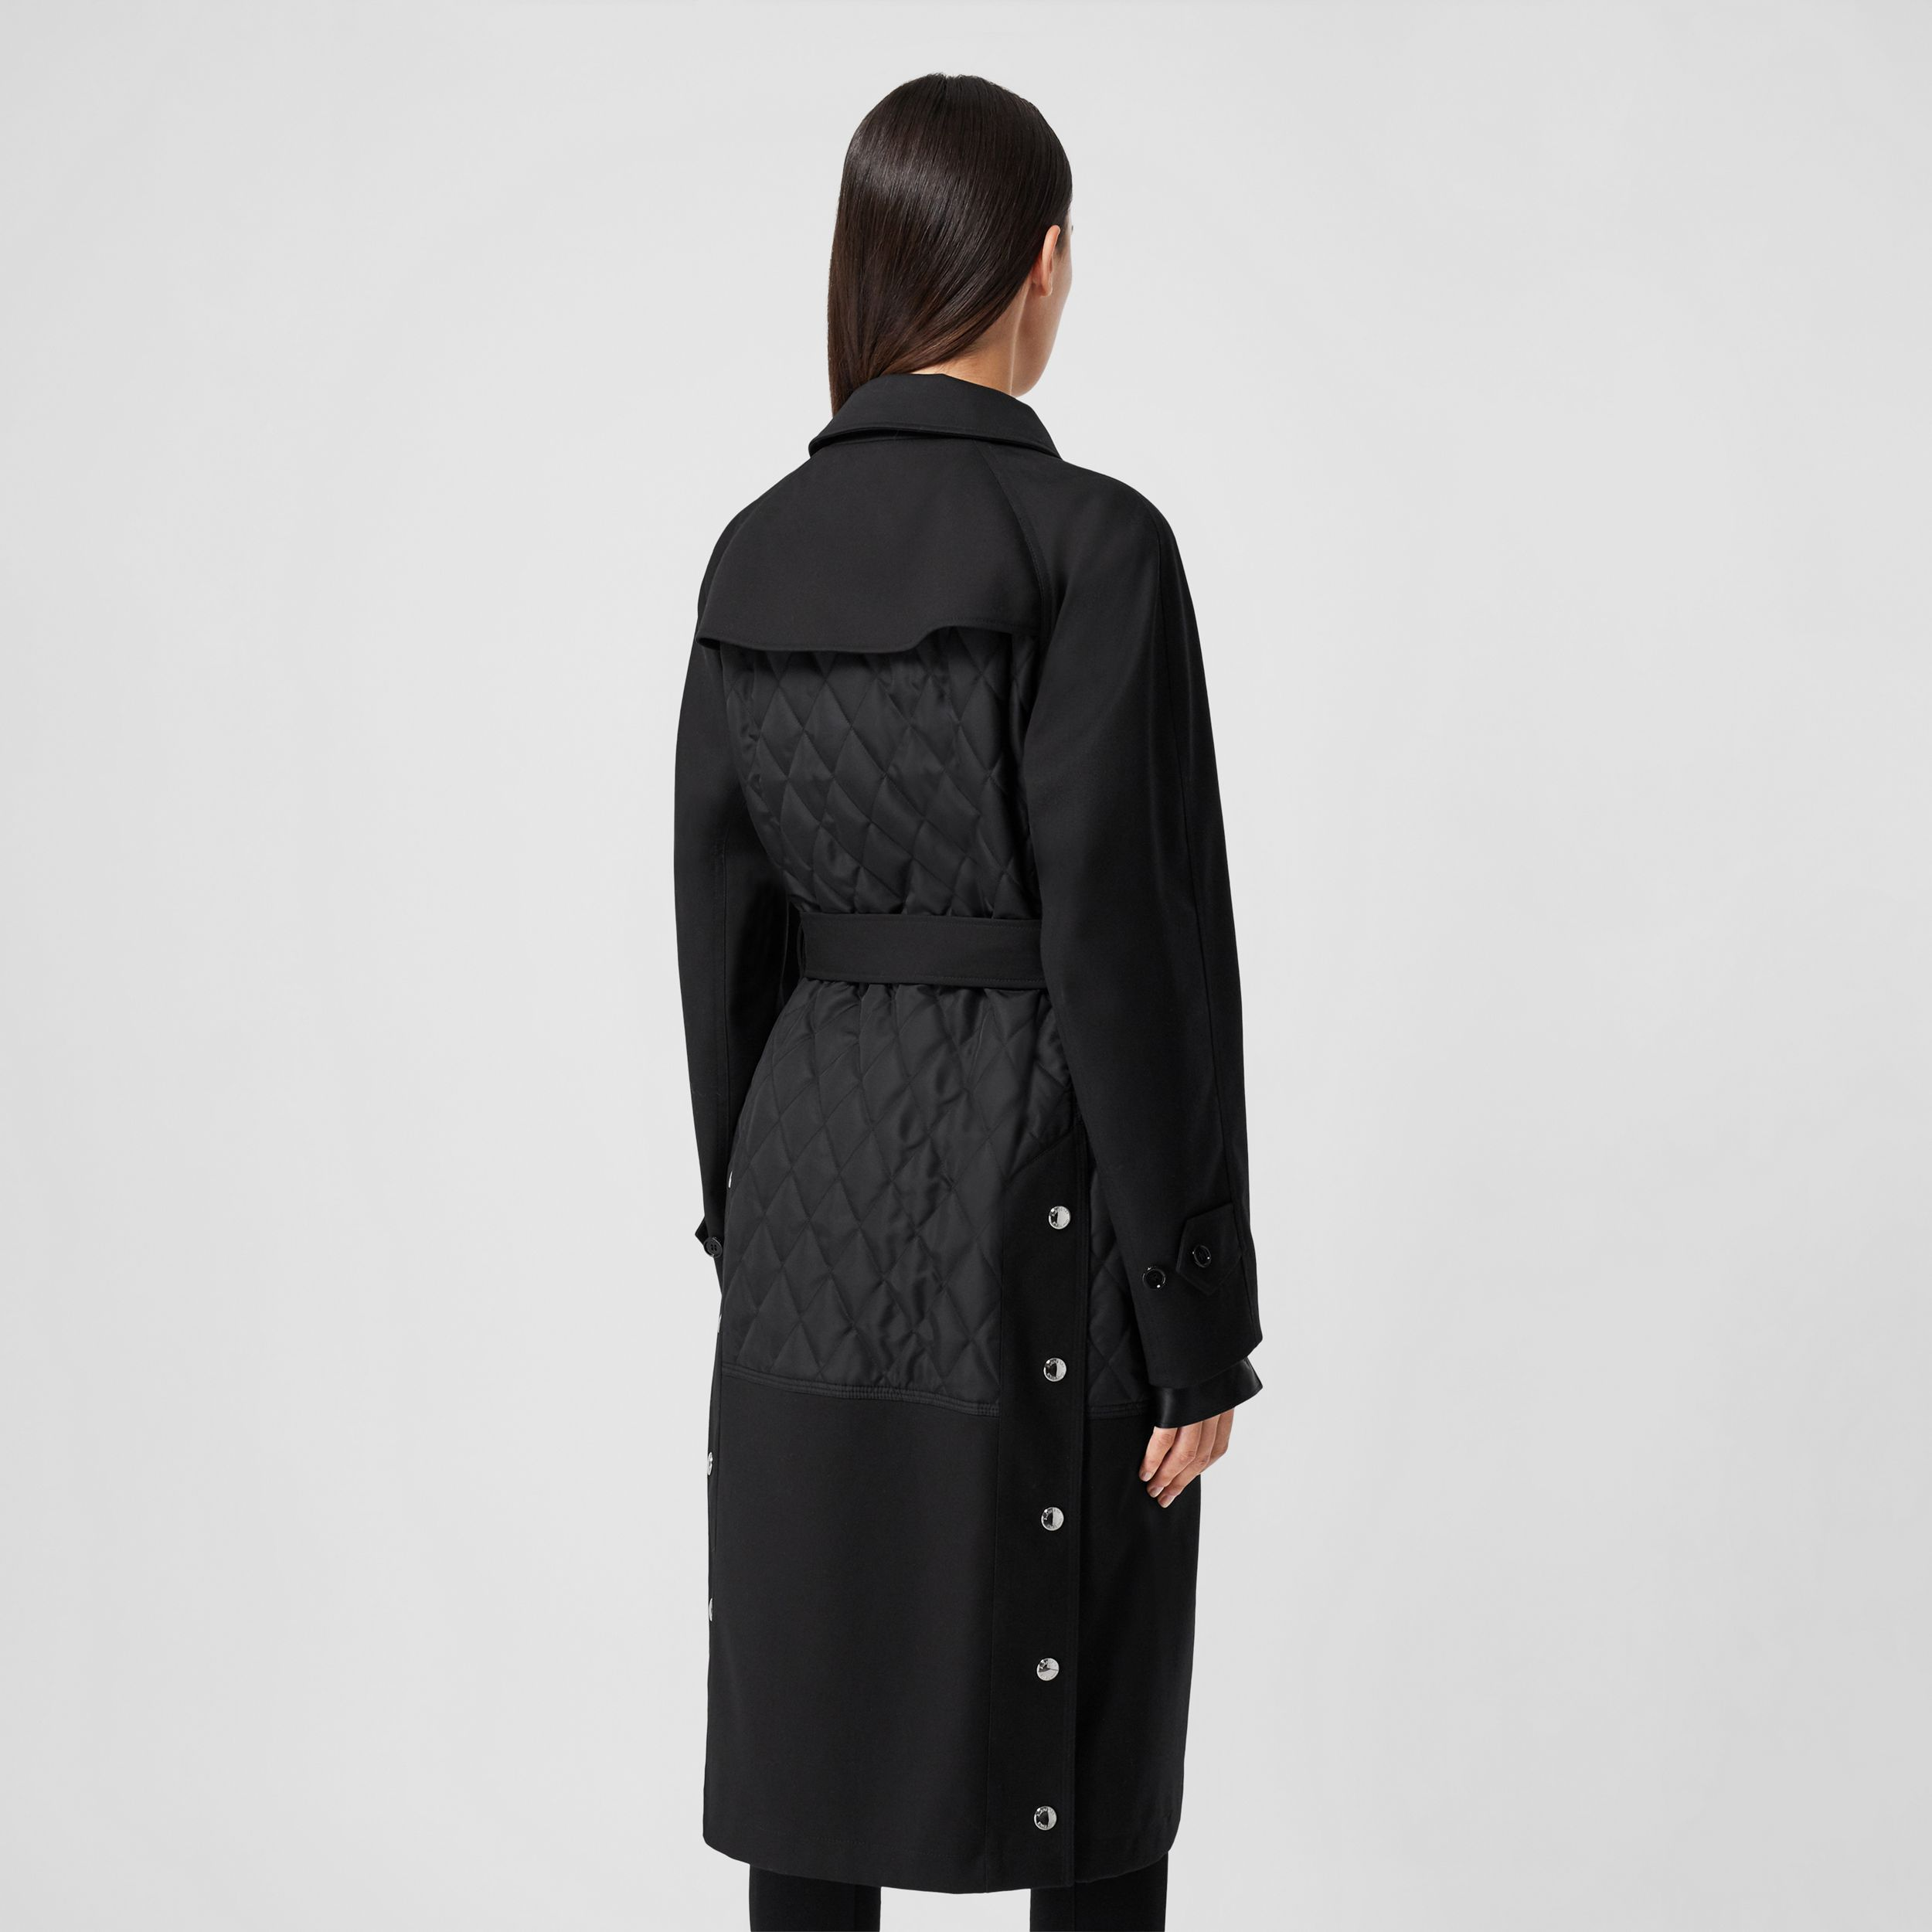 Diamond Quilted Panel Cotton Gabardine Car Coat in Black - Women | Burberry United Kingdom - 3